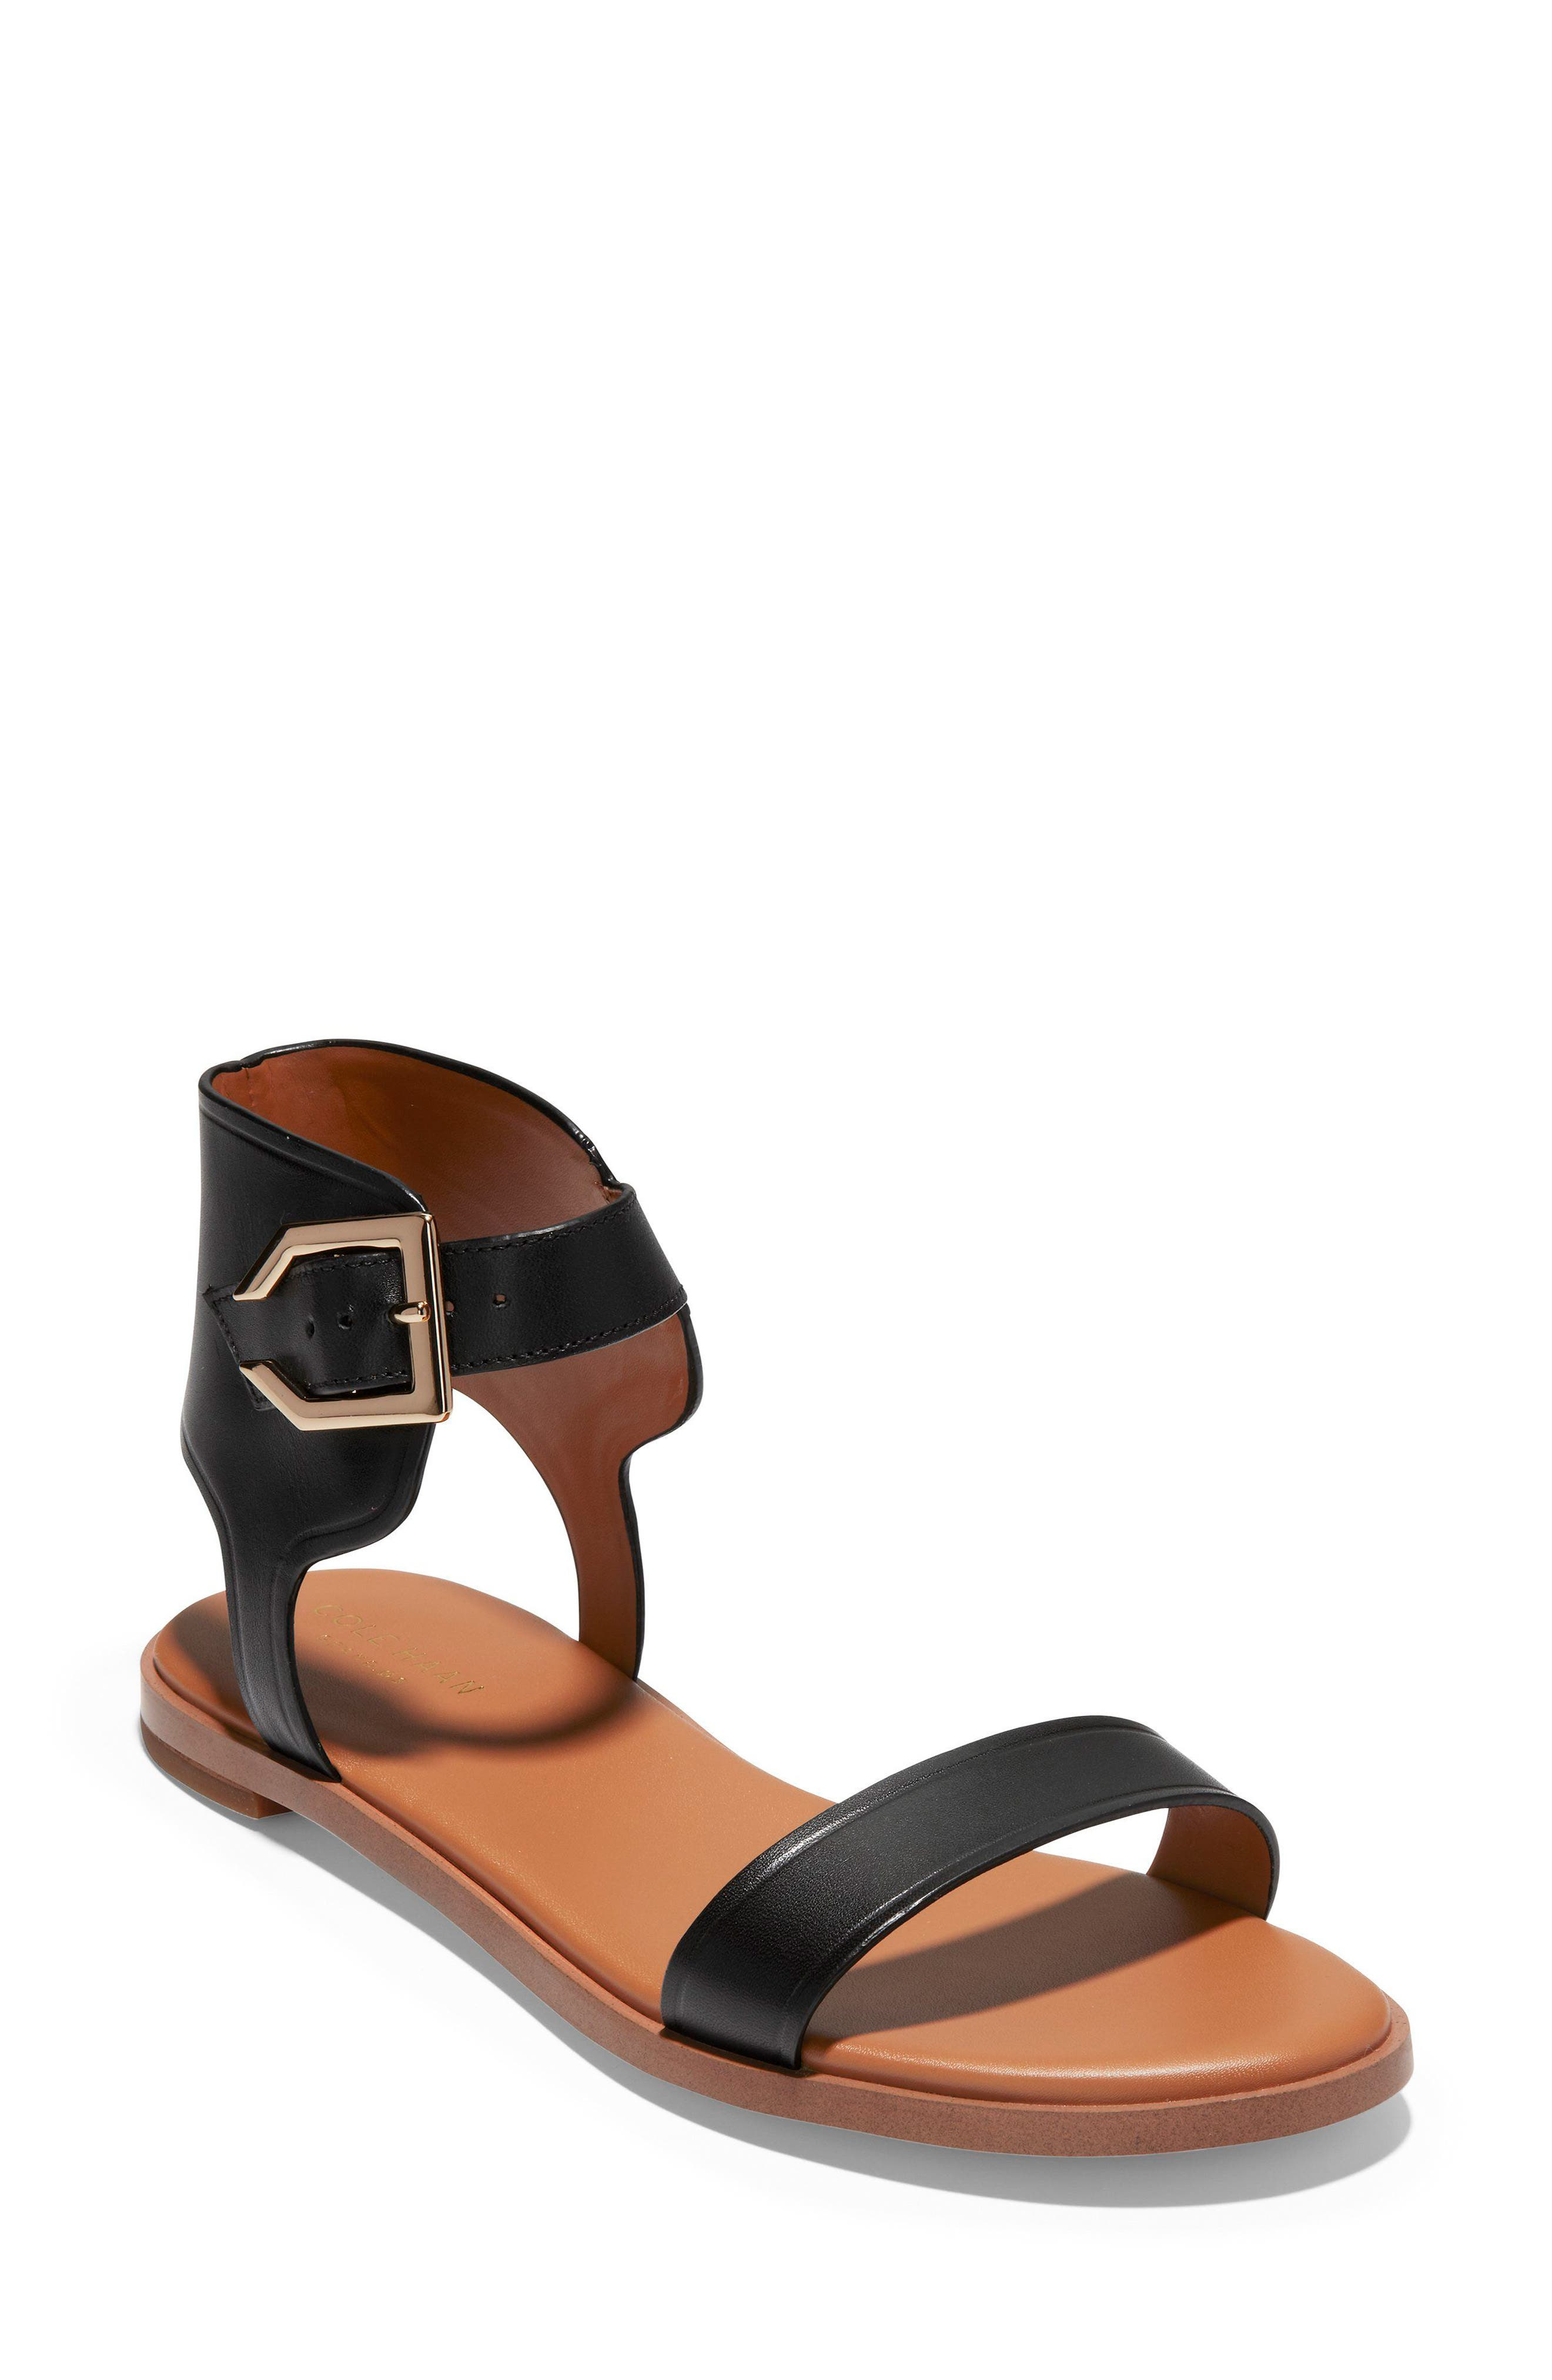 COLE HAAN,                             Anica Cuffed Sandal,                             Main thumbnail 1, color,                             001